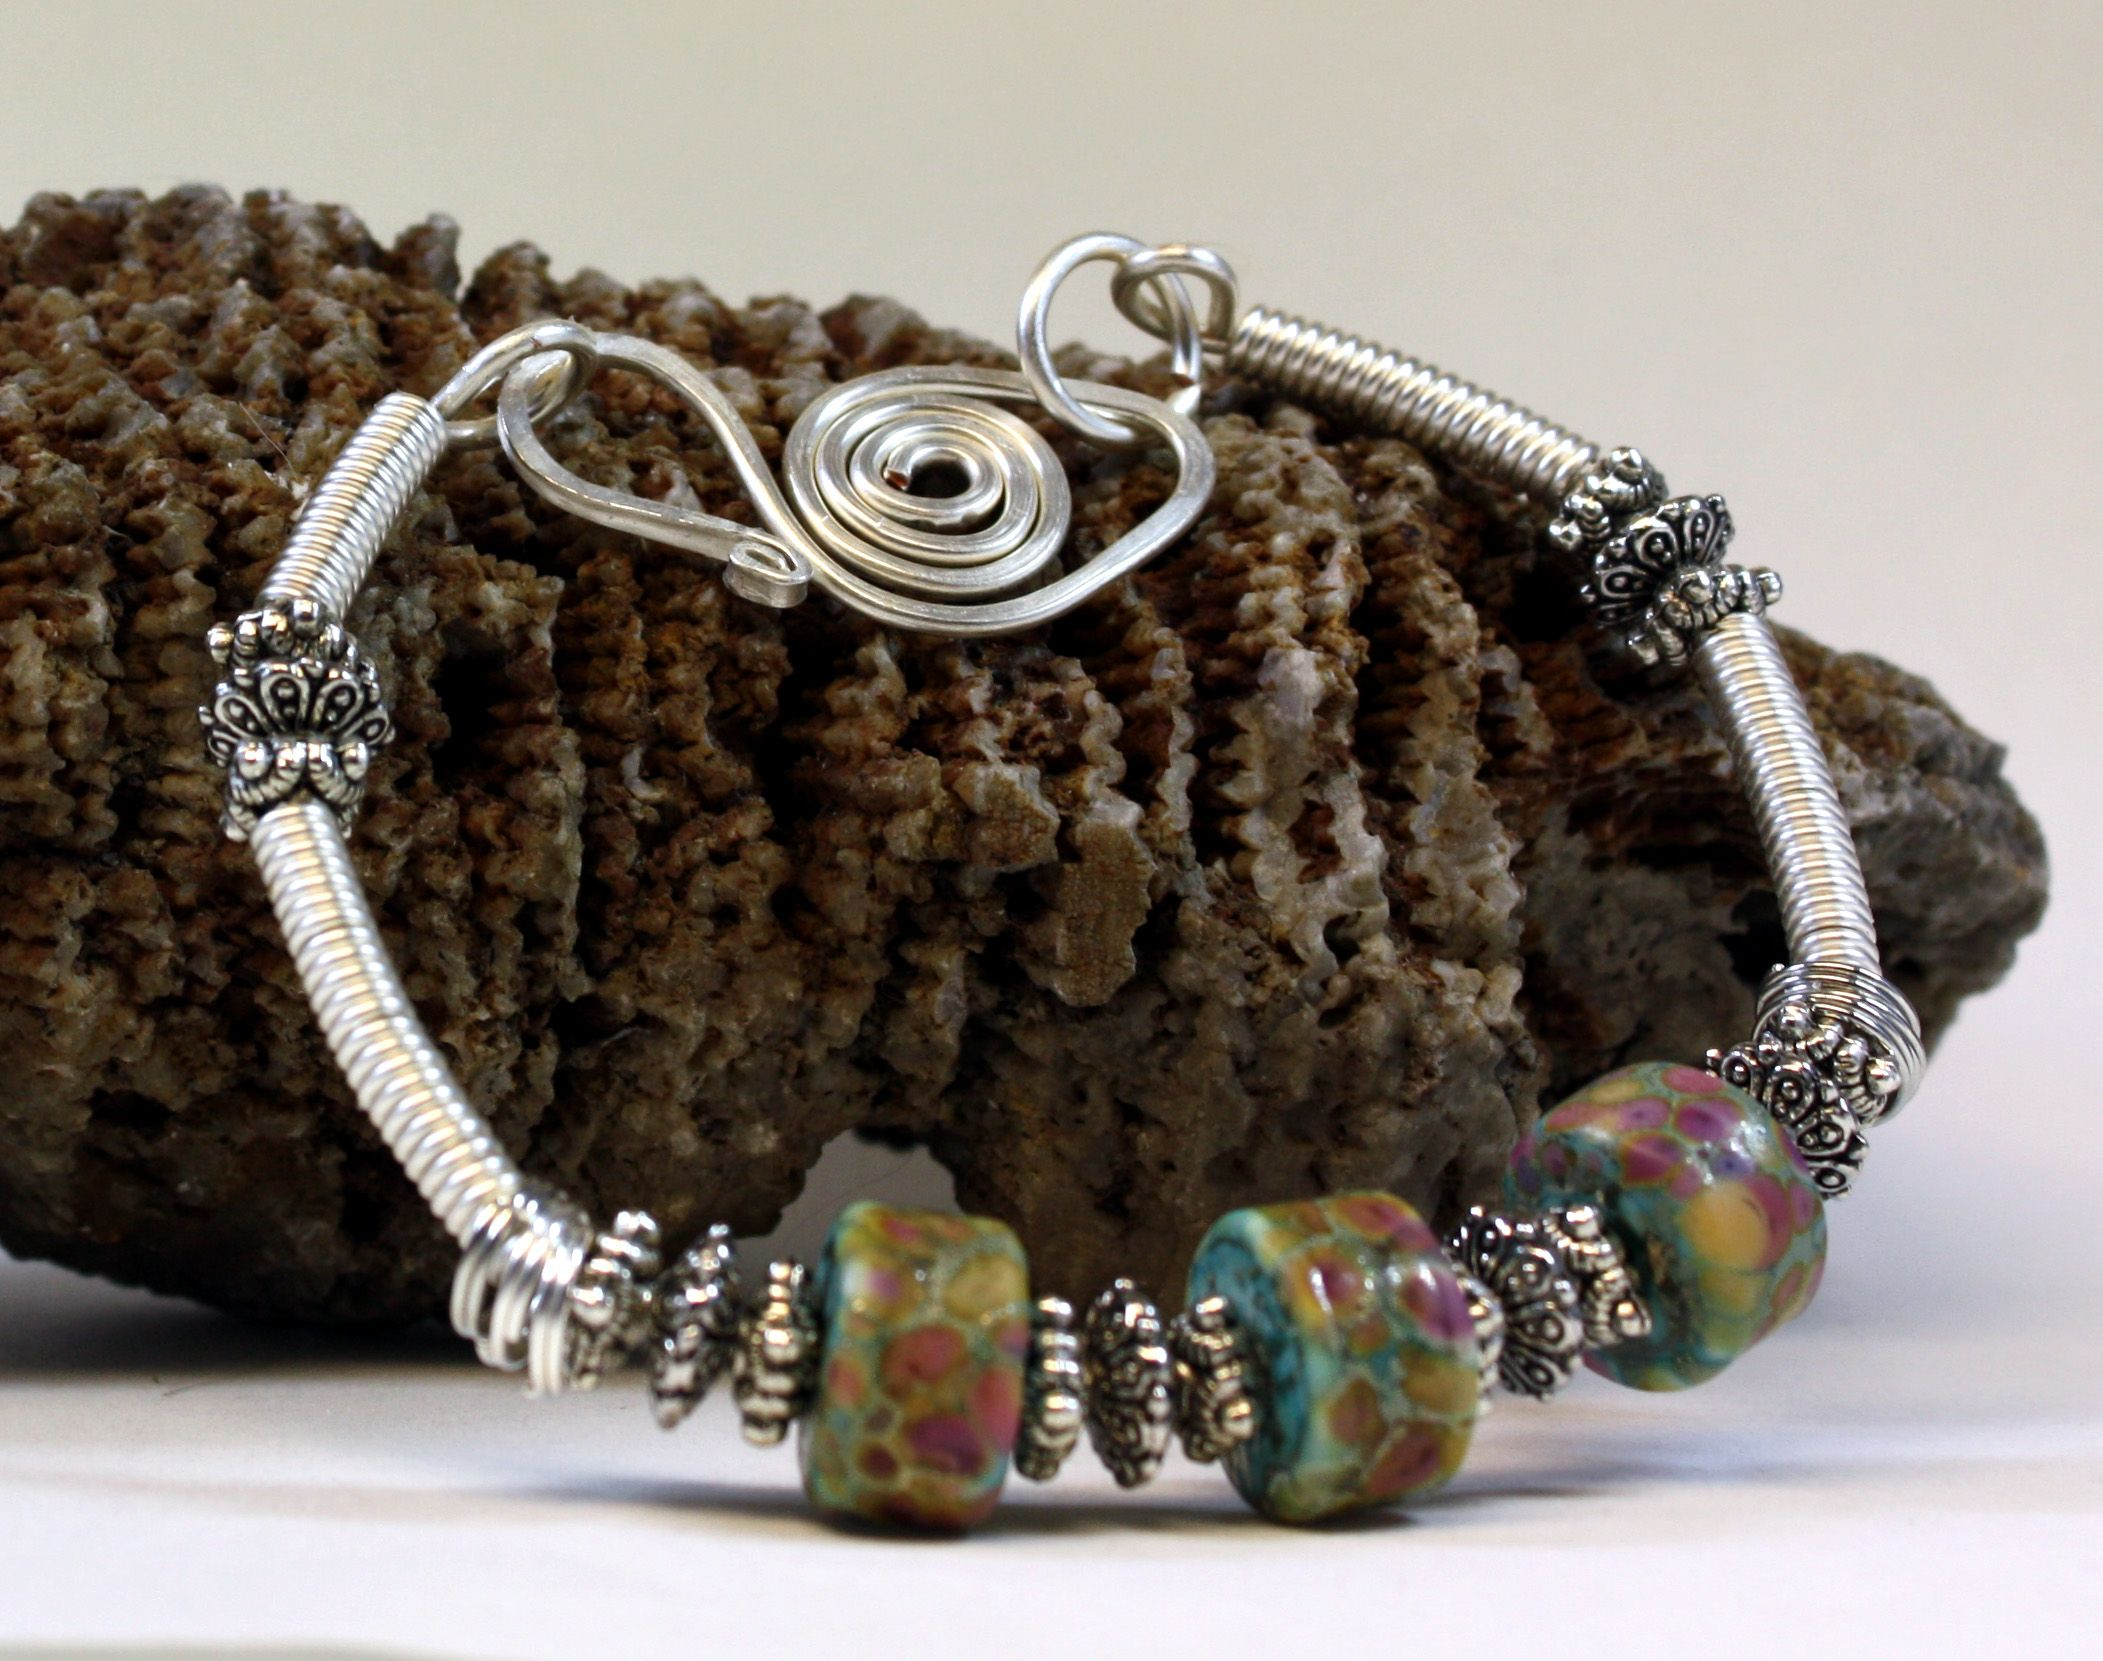 The beautiful Cherry Blossom Etched Lampwork Bead Bracelet is hand created with silver colored craft wire, coiled silver colored craft wire, 3 beautiful etched lampwork beads in shades of turquoise, pink, purple, ivory and tan with fine silver lines around the colors, silver colored accent beads, a hand created forged clasp. Fits up to a 8 3/4 inch wrist, jump rings can be added to make it fit a larger wrist. This will be a gorgeous handcrafted bracelet to add to your jewelry collection.